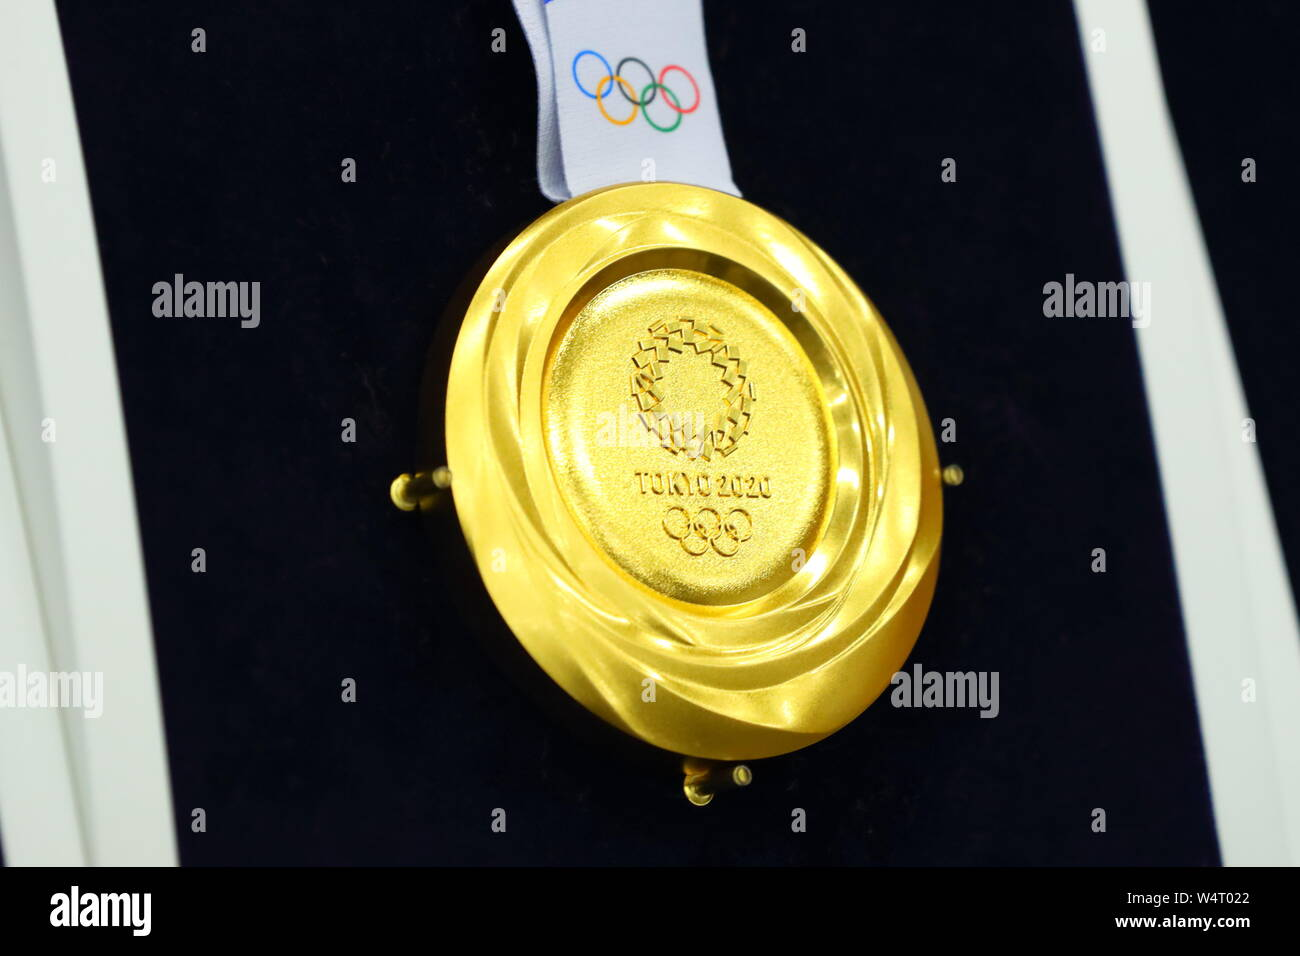 July 2020 Games With Gold.Gold Medal July 25 2019 The Tokyo Organizing Committee